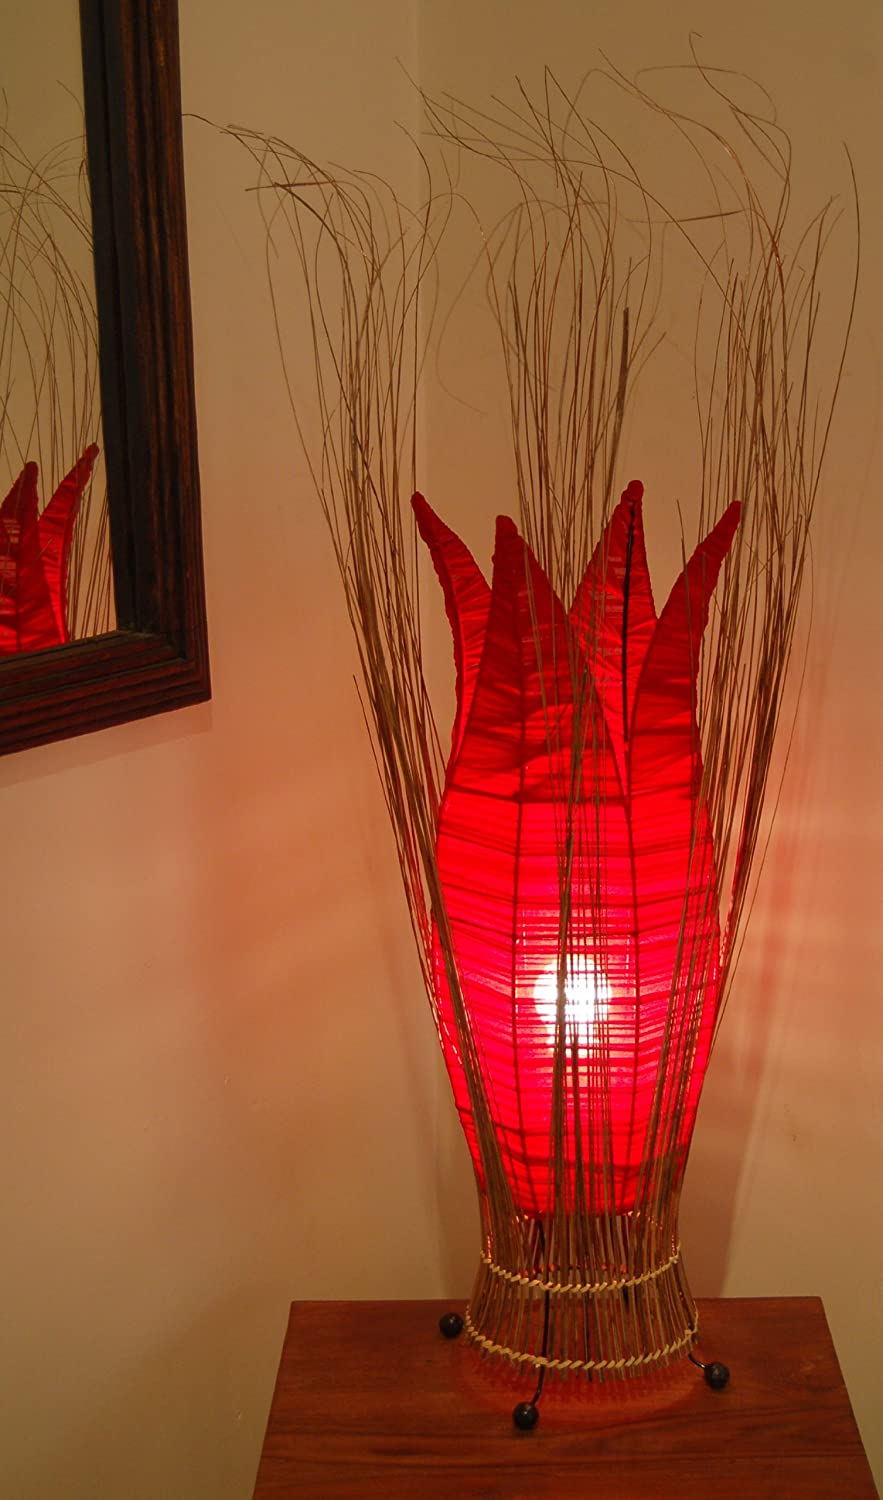 White 70cm tall Unusual Table Bedside Lamp-Handmade in Bali from Bamboo